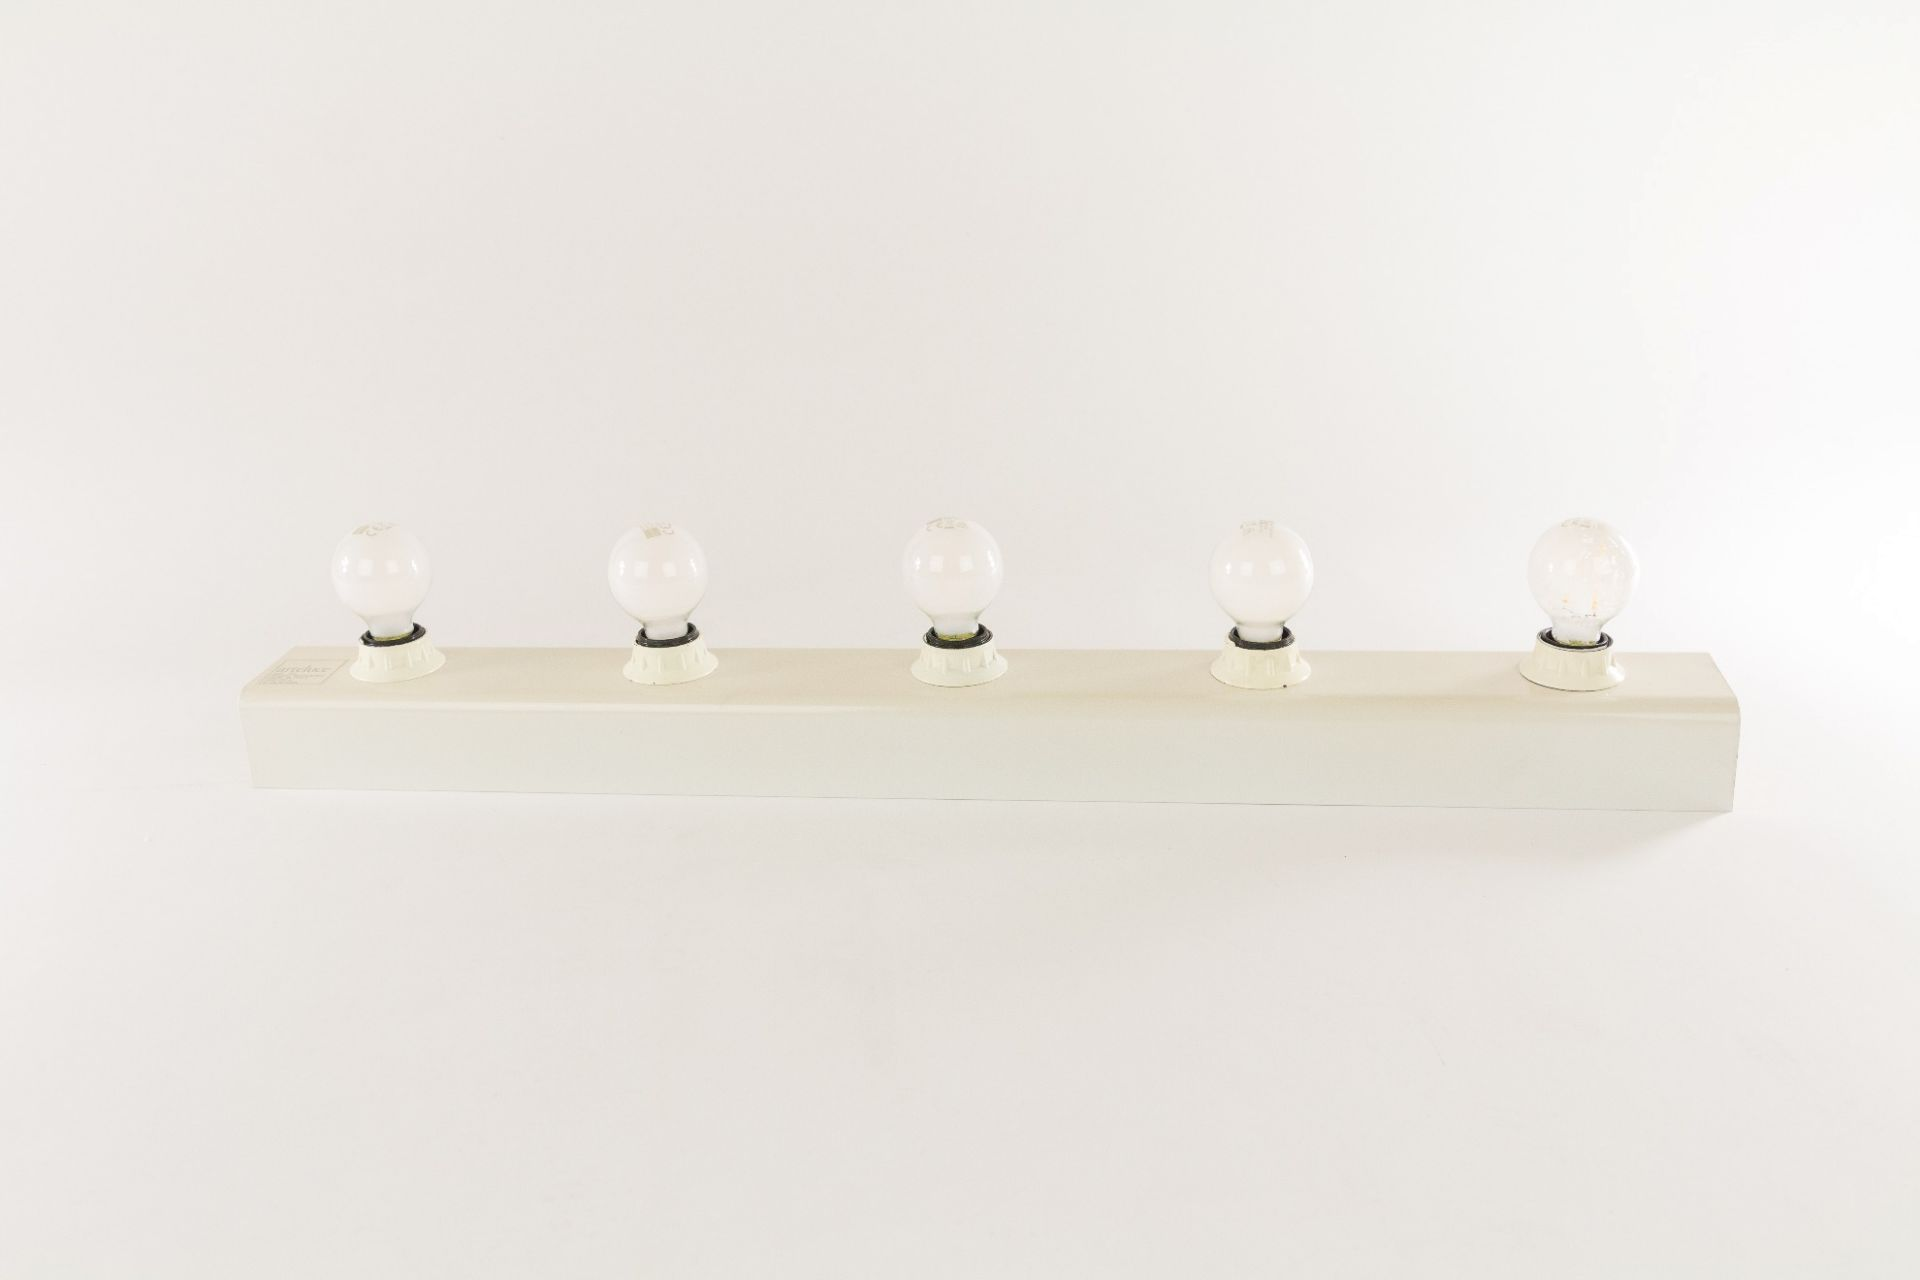 A pair of wall lamps Model 50 by Gino Sarfatti for Arteluce, 1968